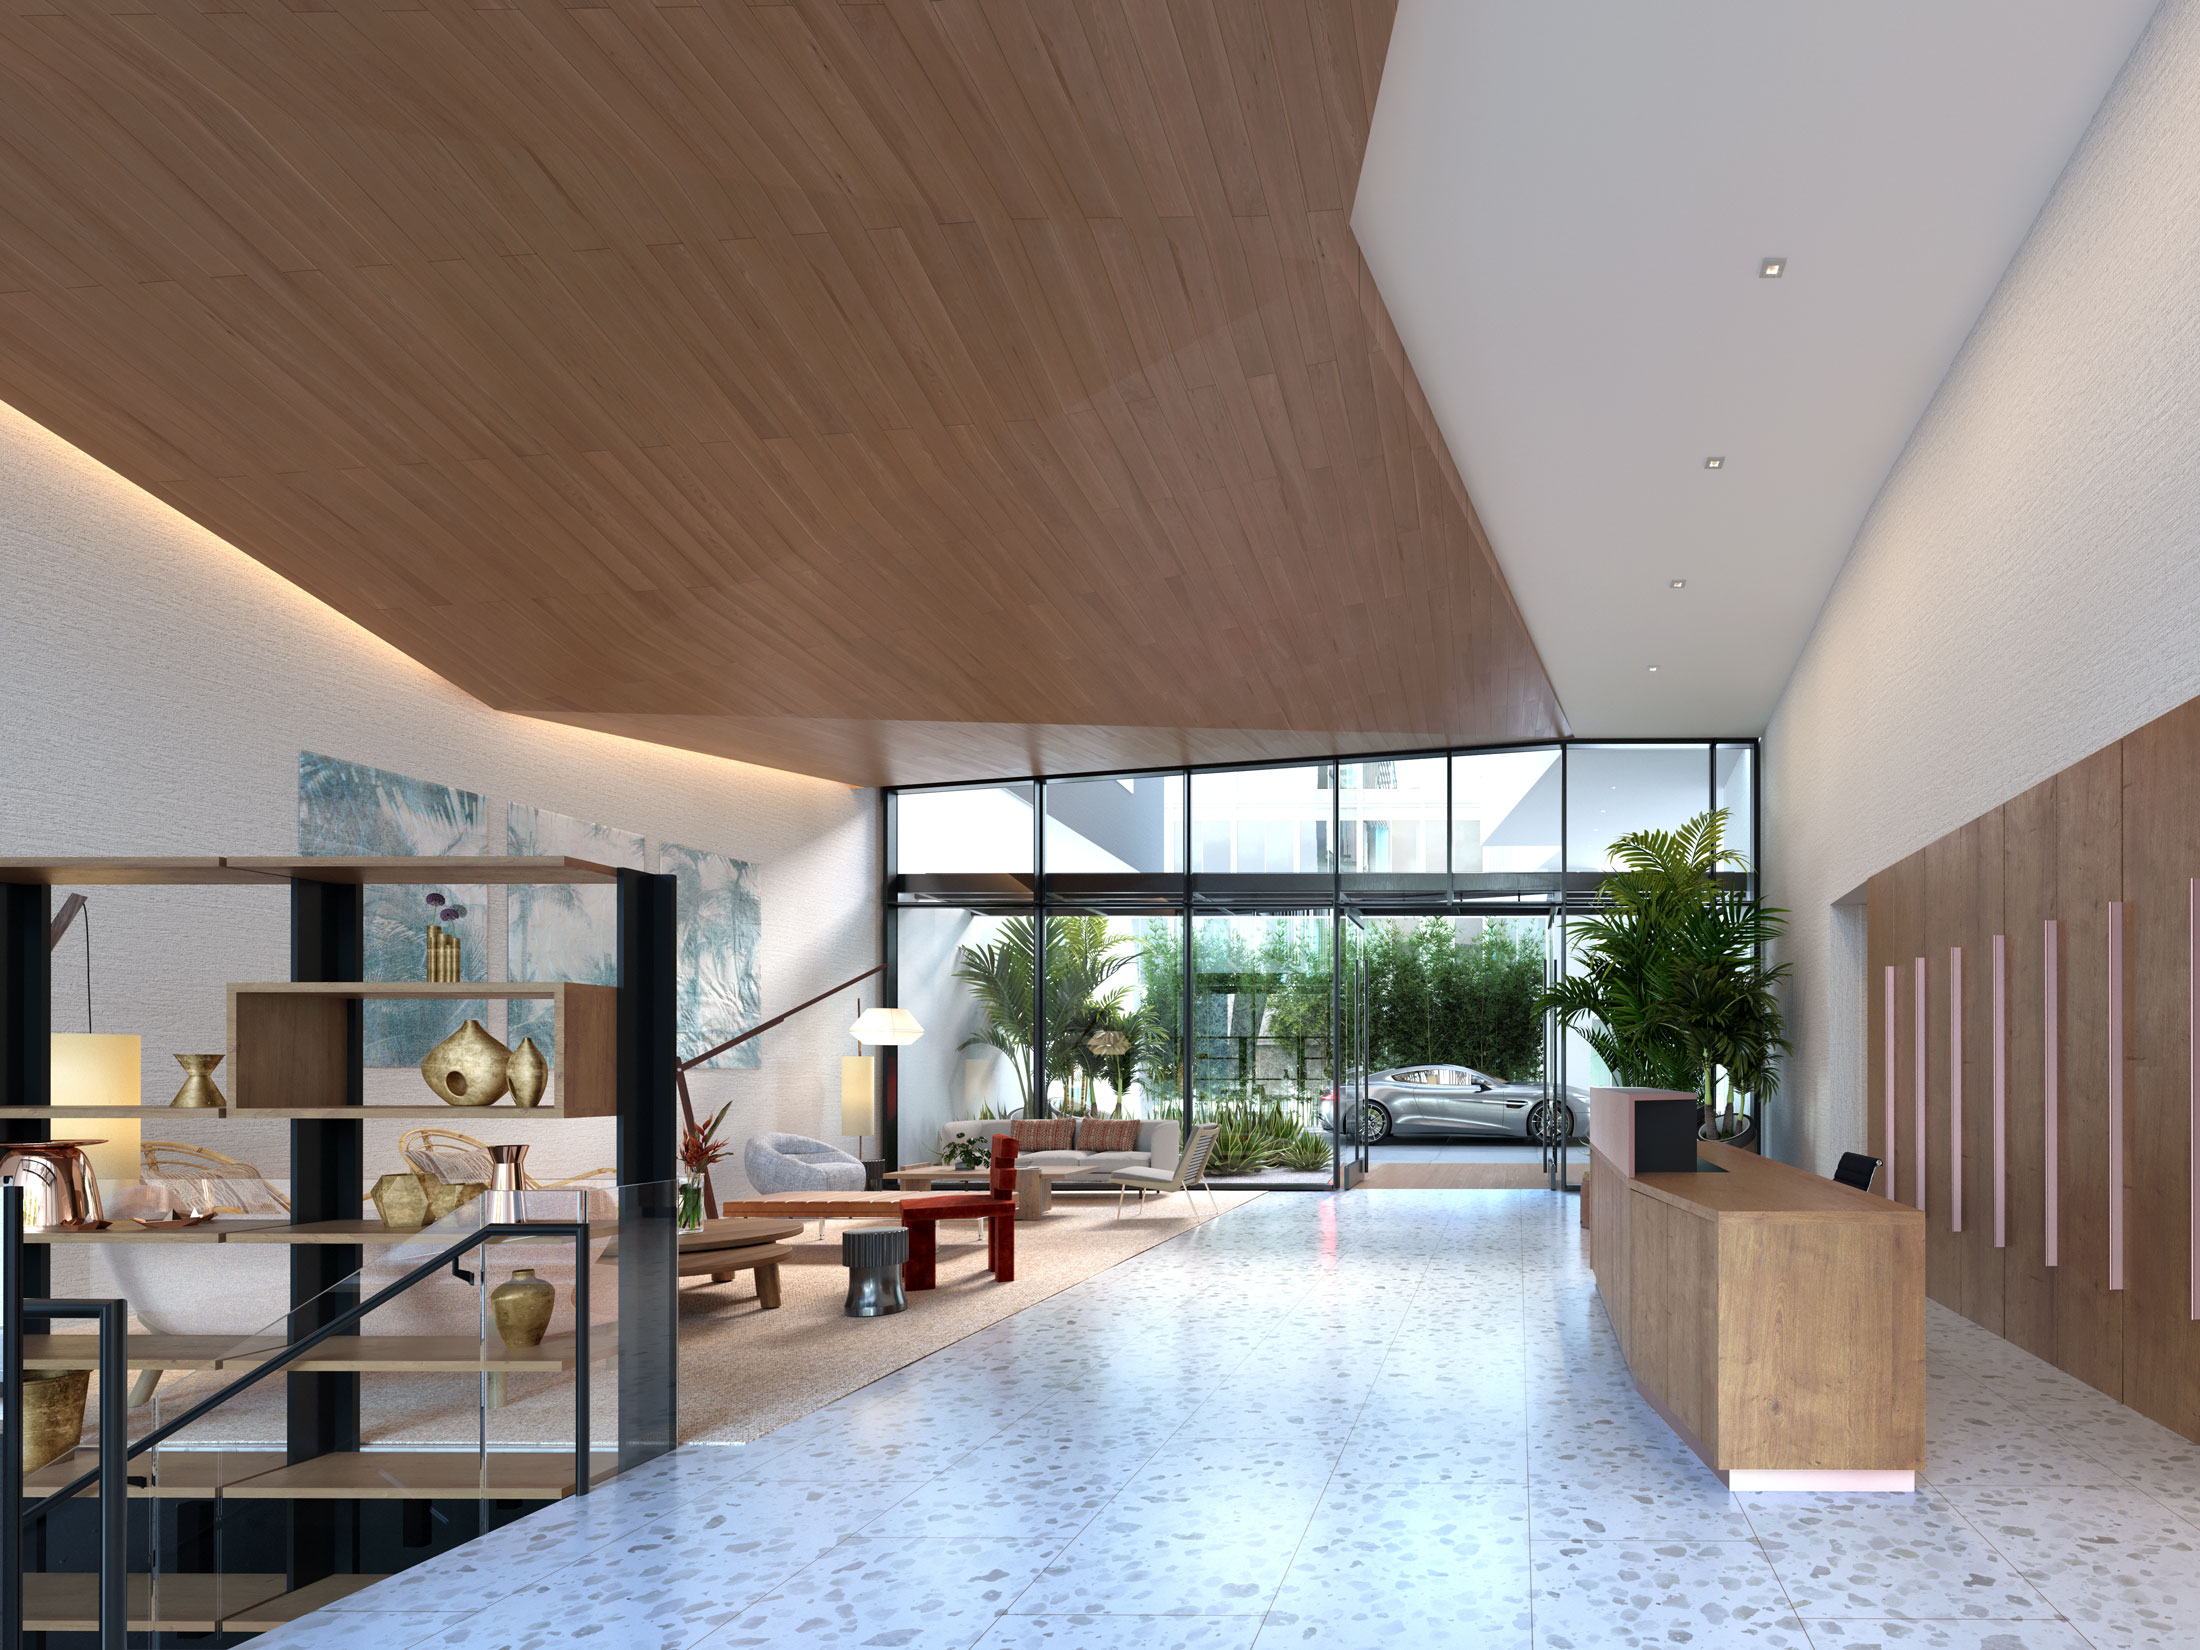 Architectural Rendering of the lobby of The Park building project located in Santa Monica, California